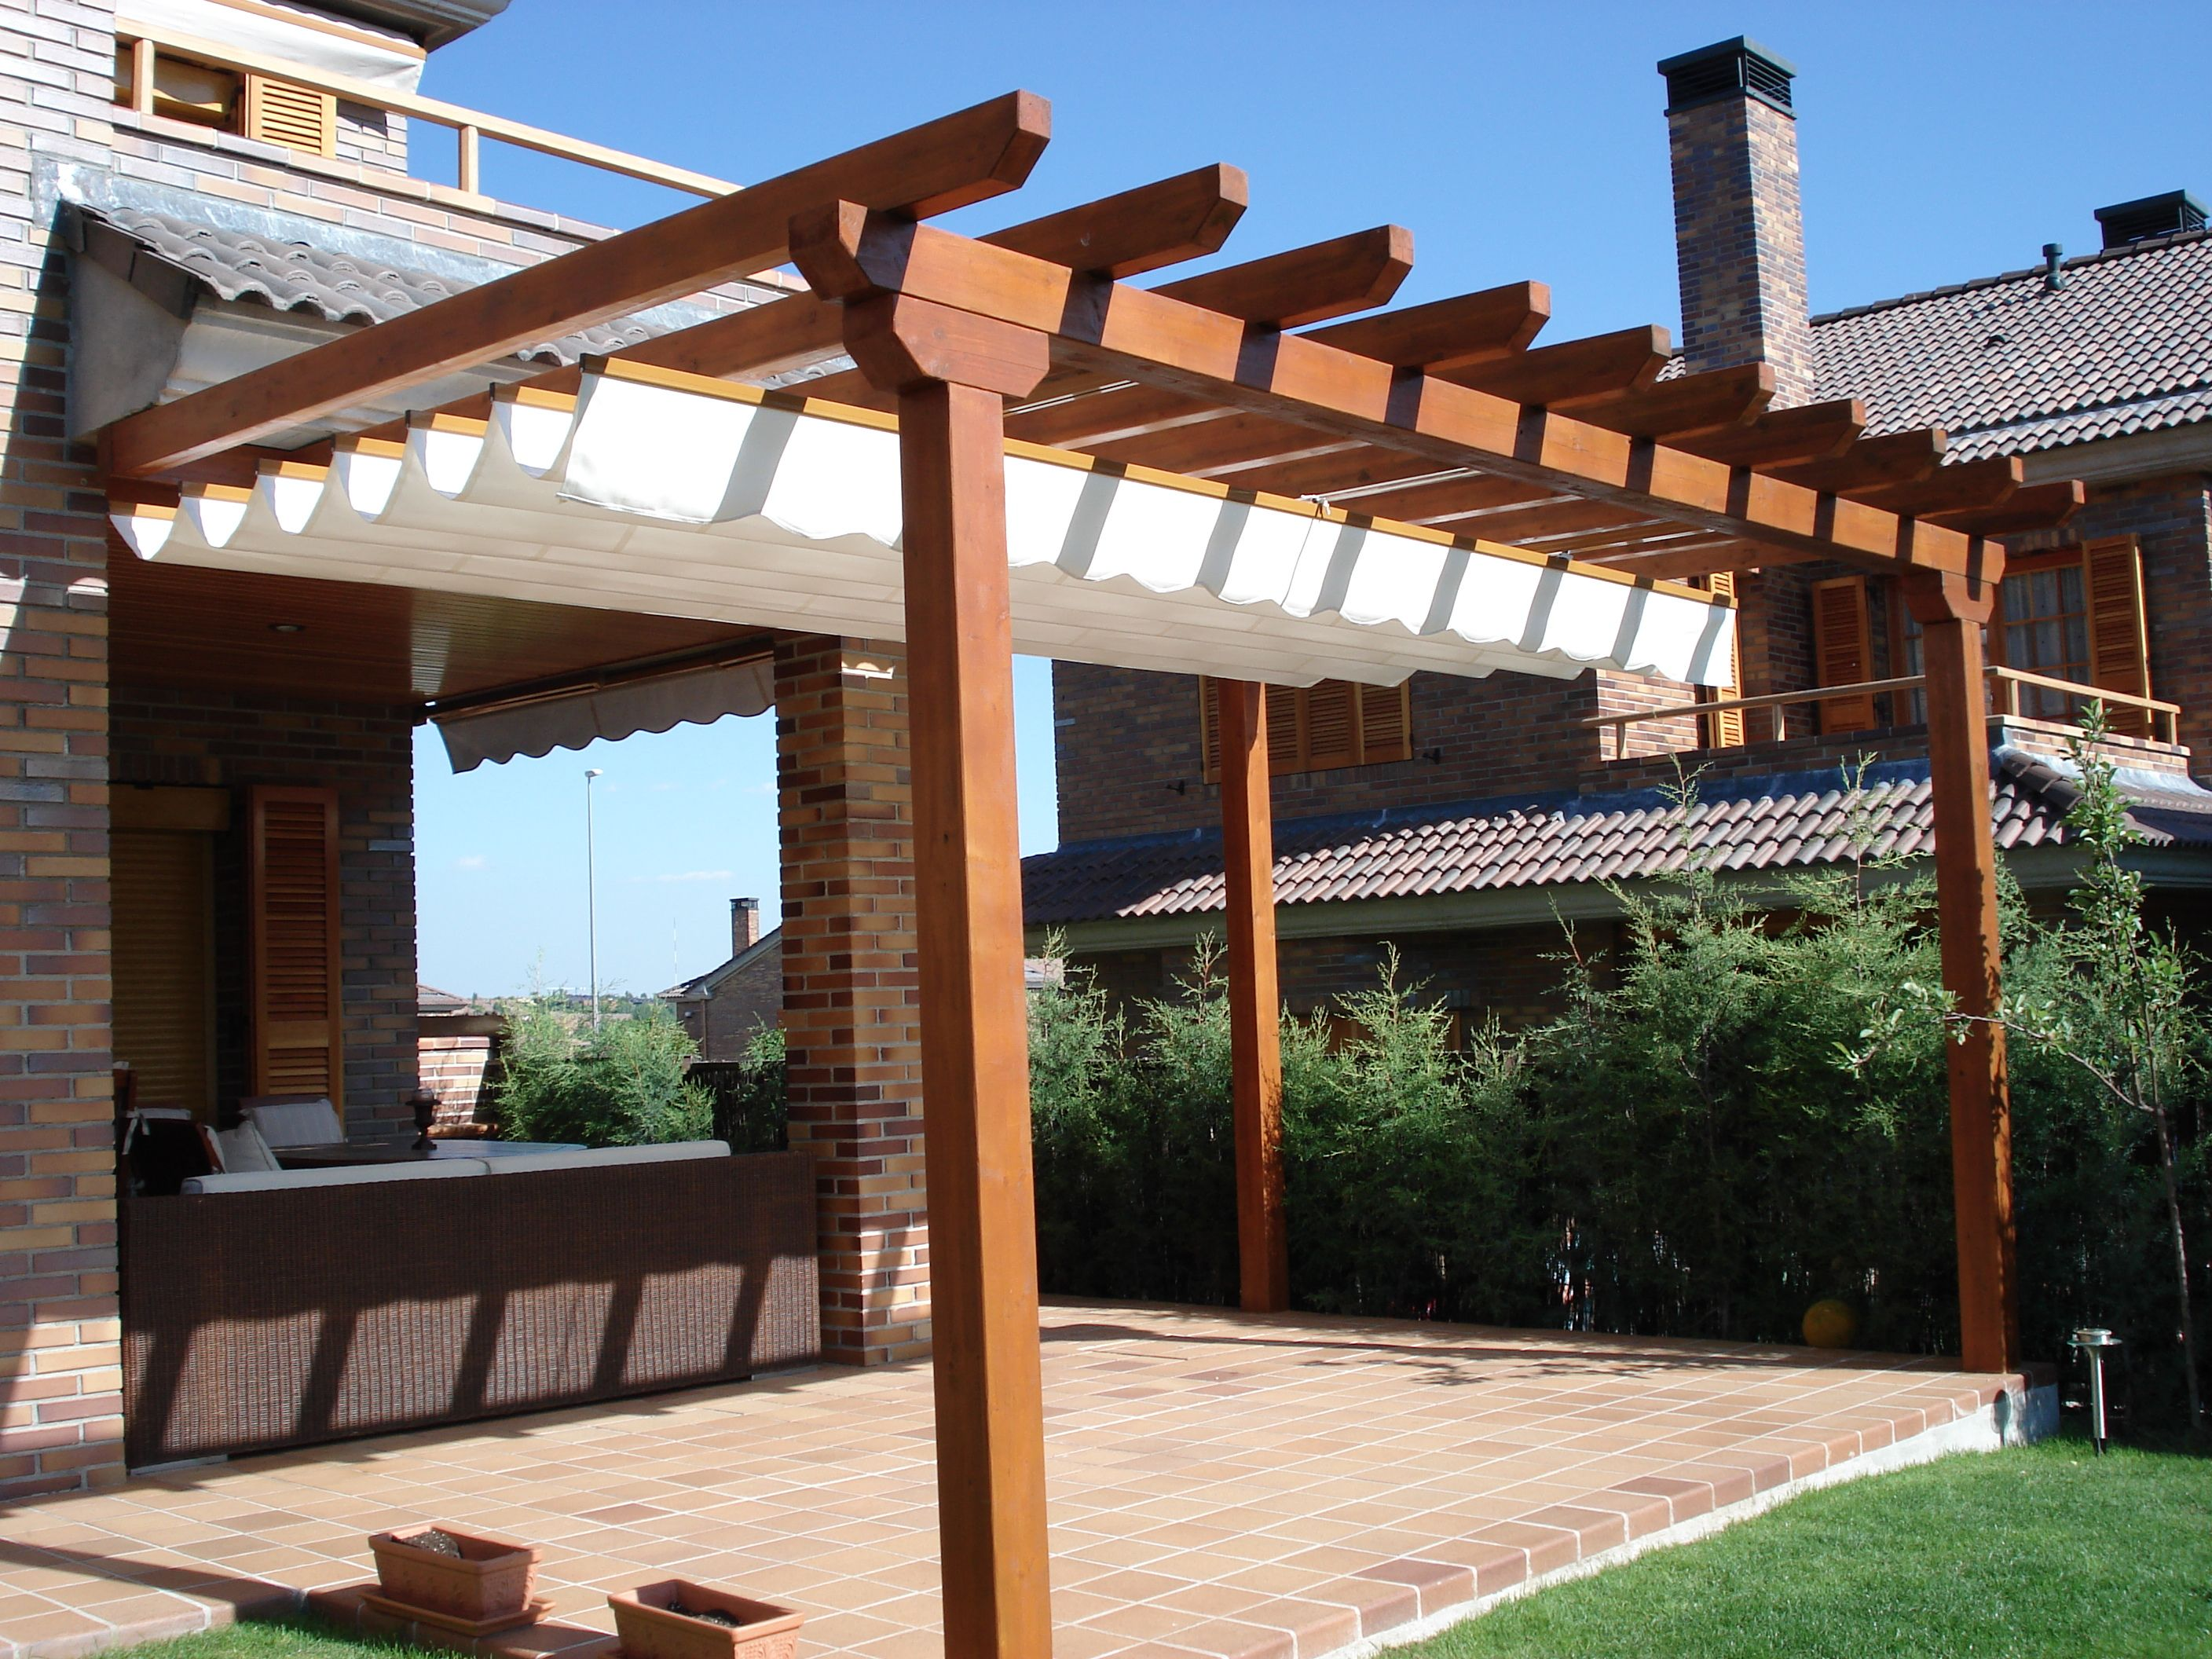 P rgolas de madera ideas para el hogar pinterest for Ideas para patios